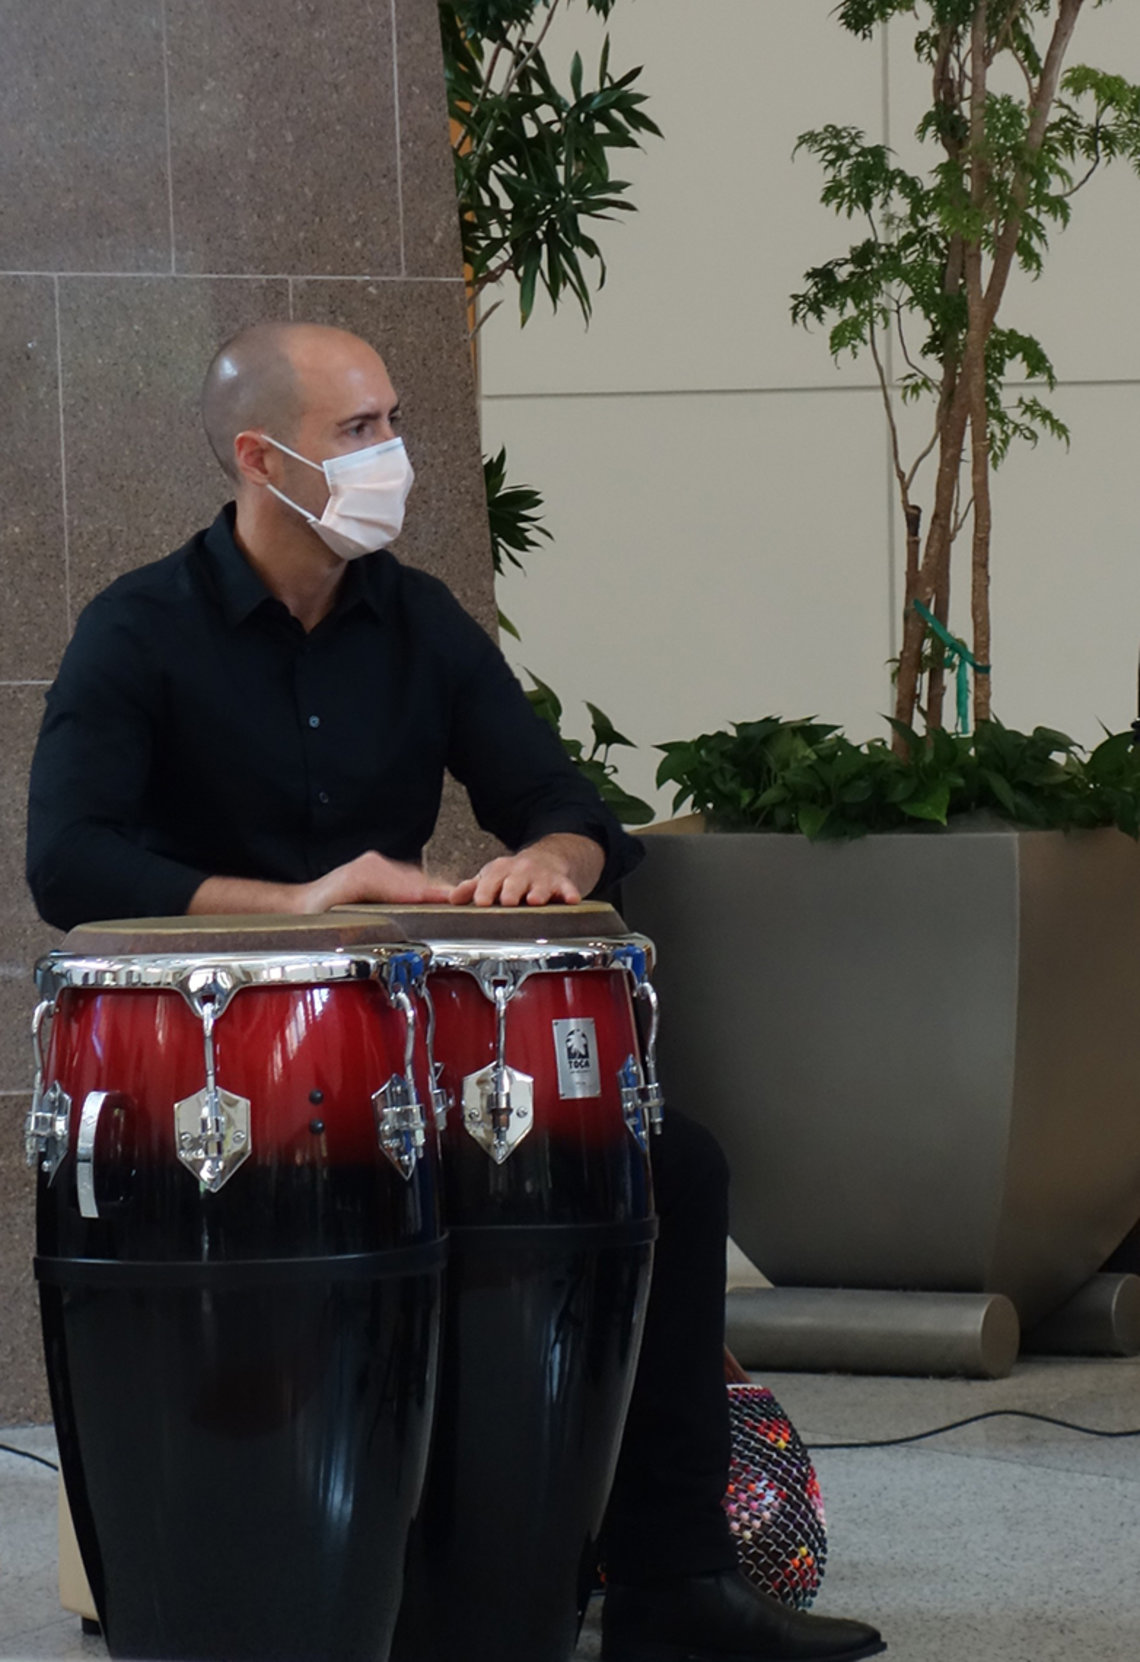 A man rests his hands on conga drums.